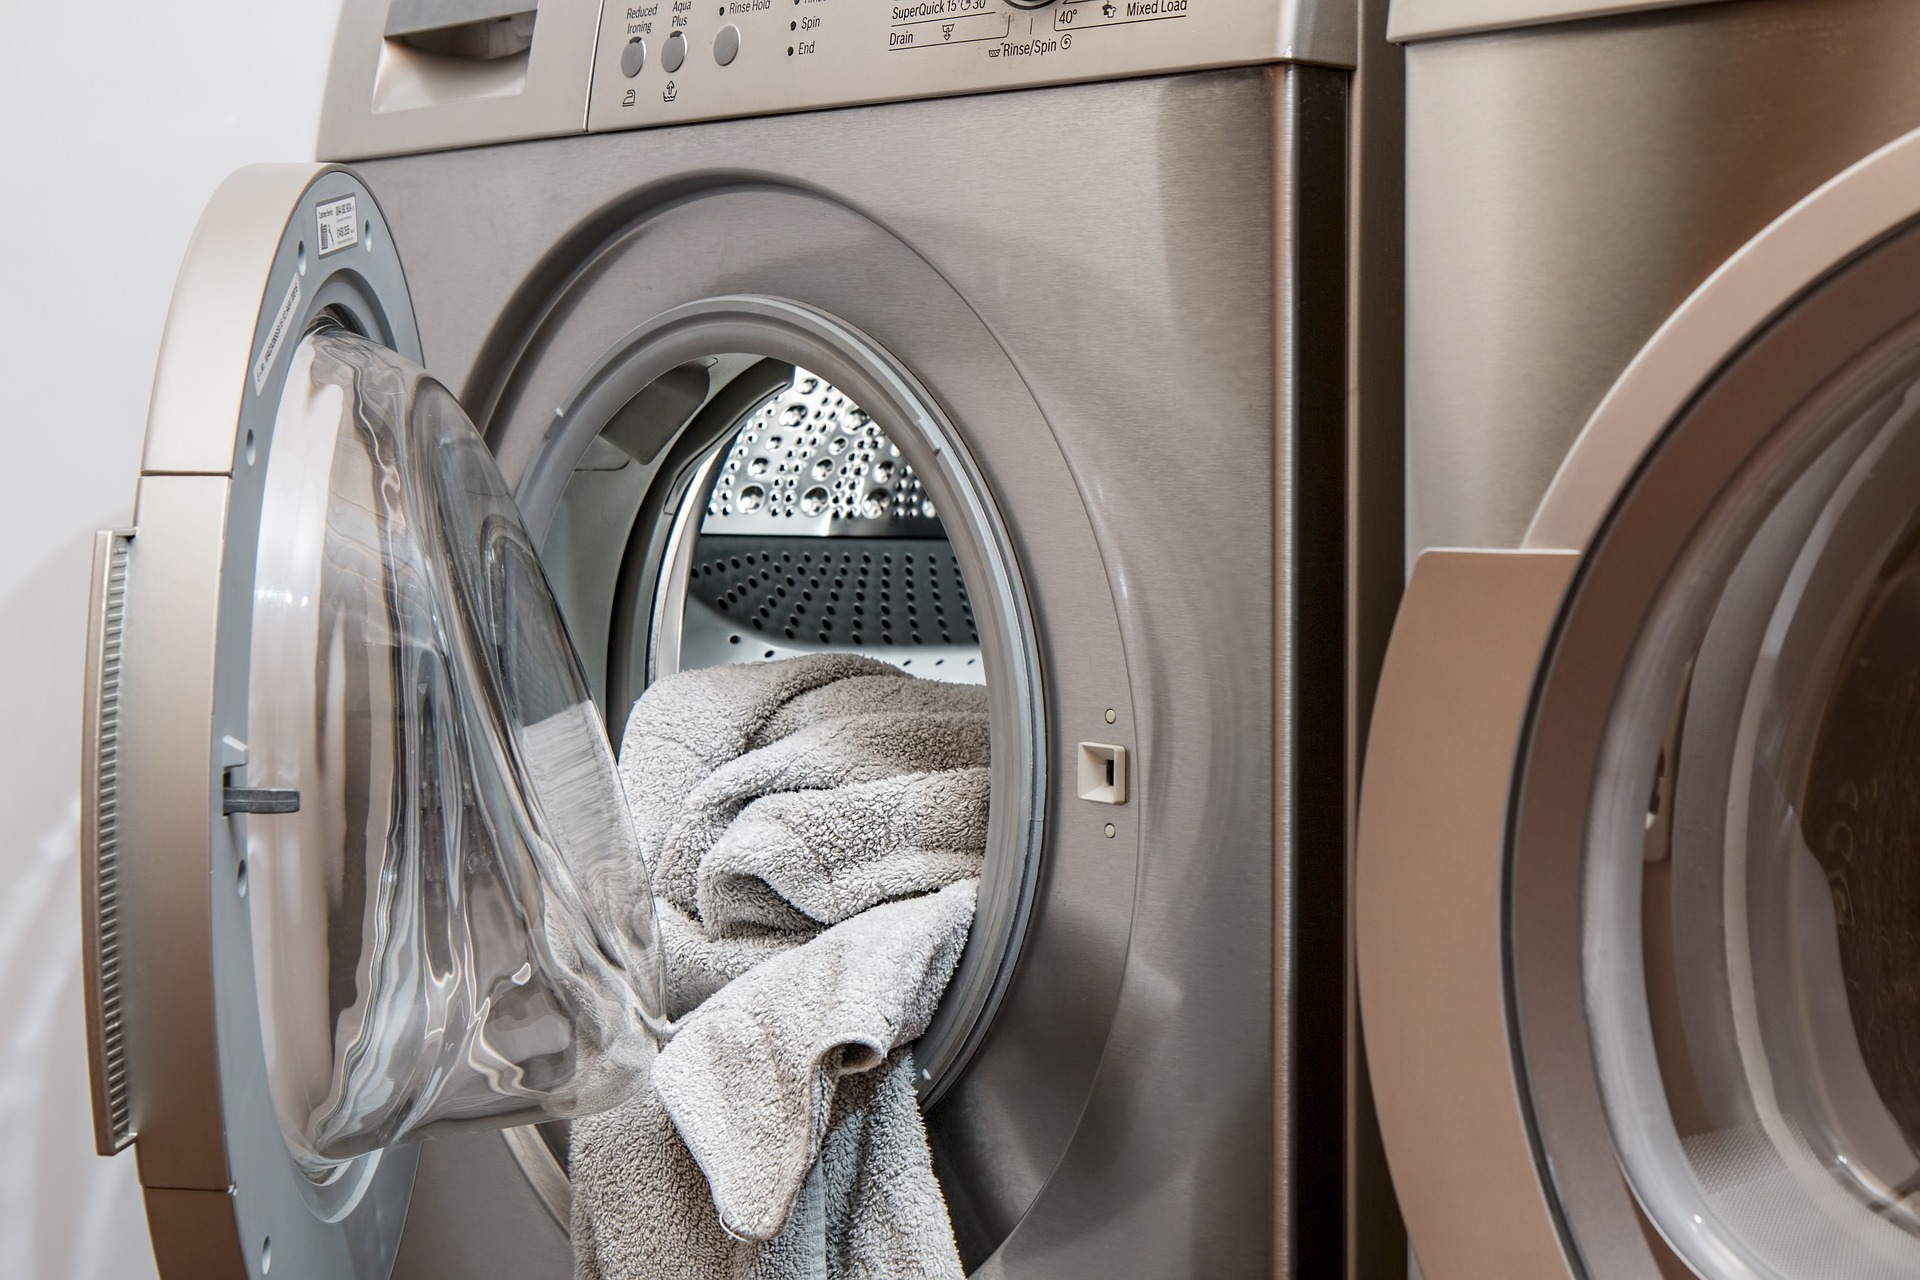 https://pixabay.com/photos/washing-machine-laundry-tumble-drier-2668472/